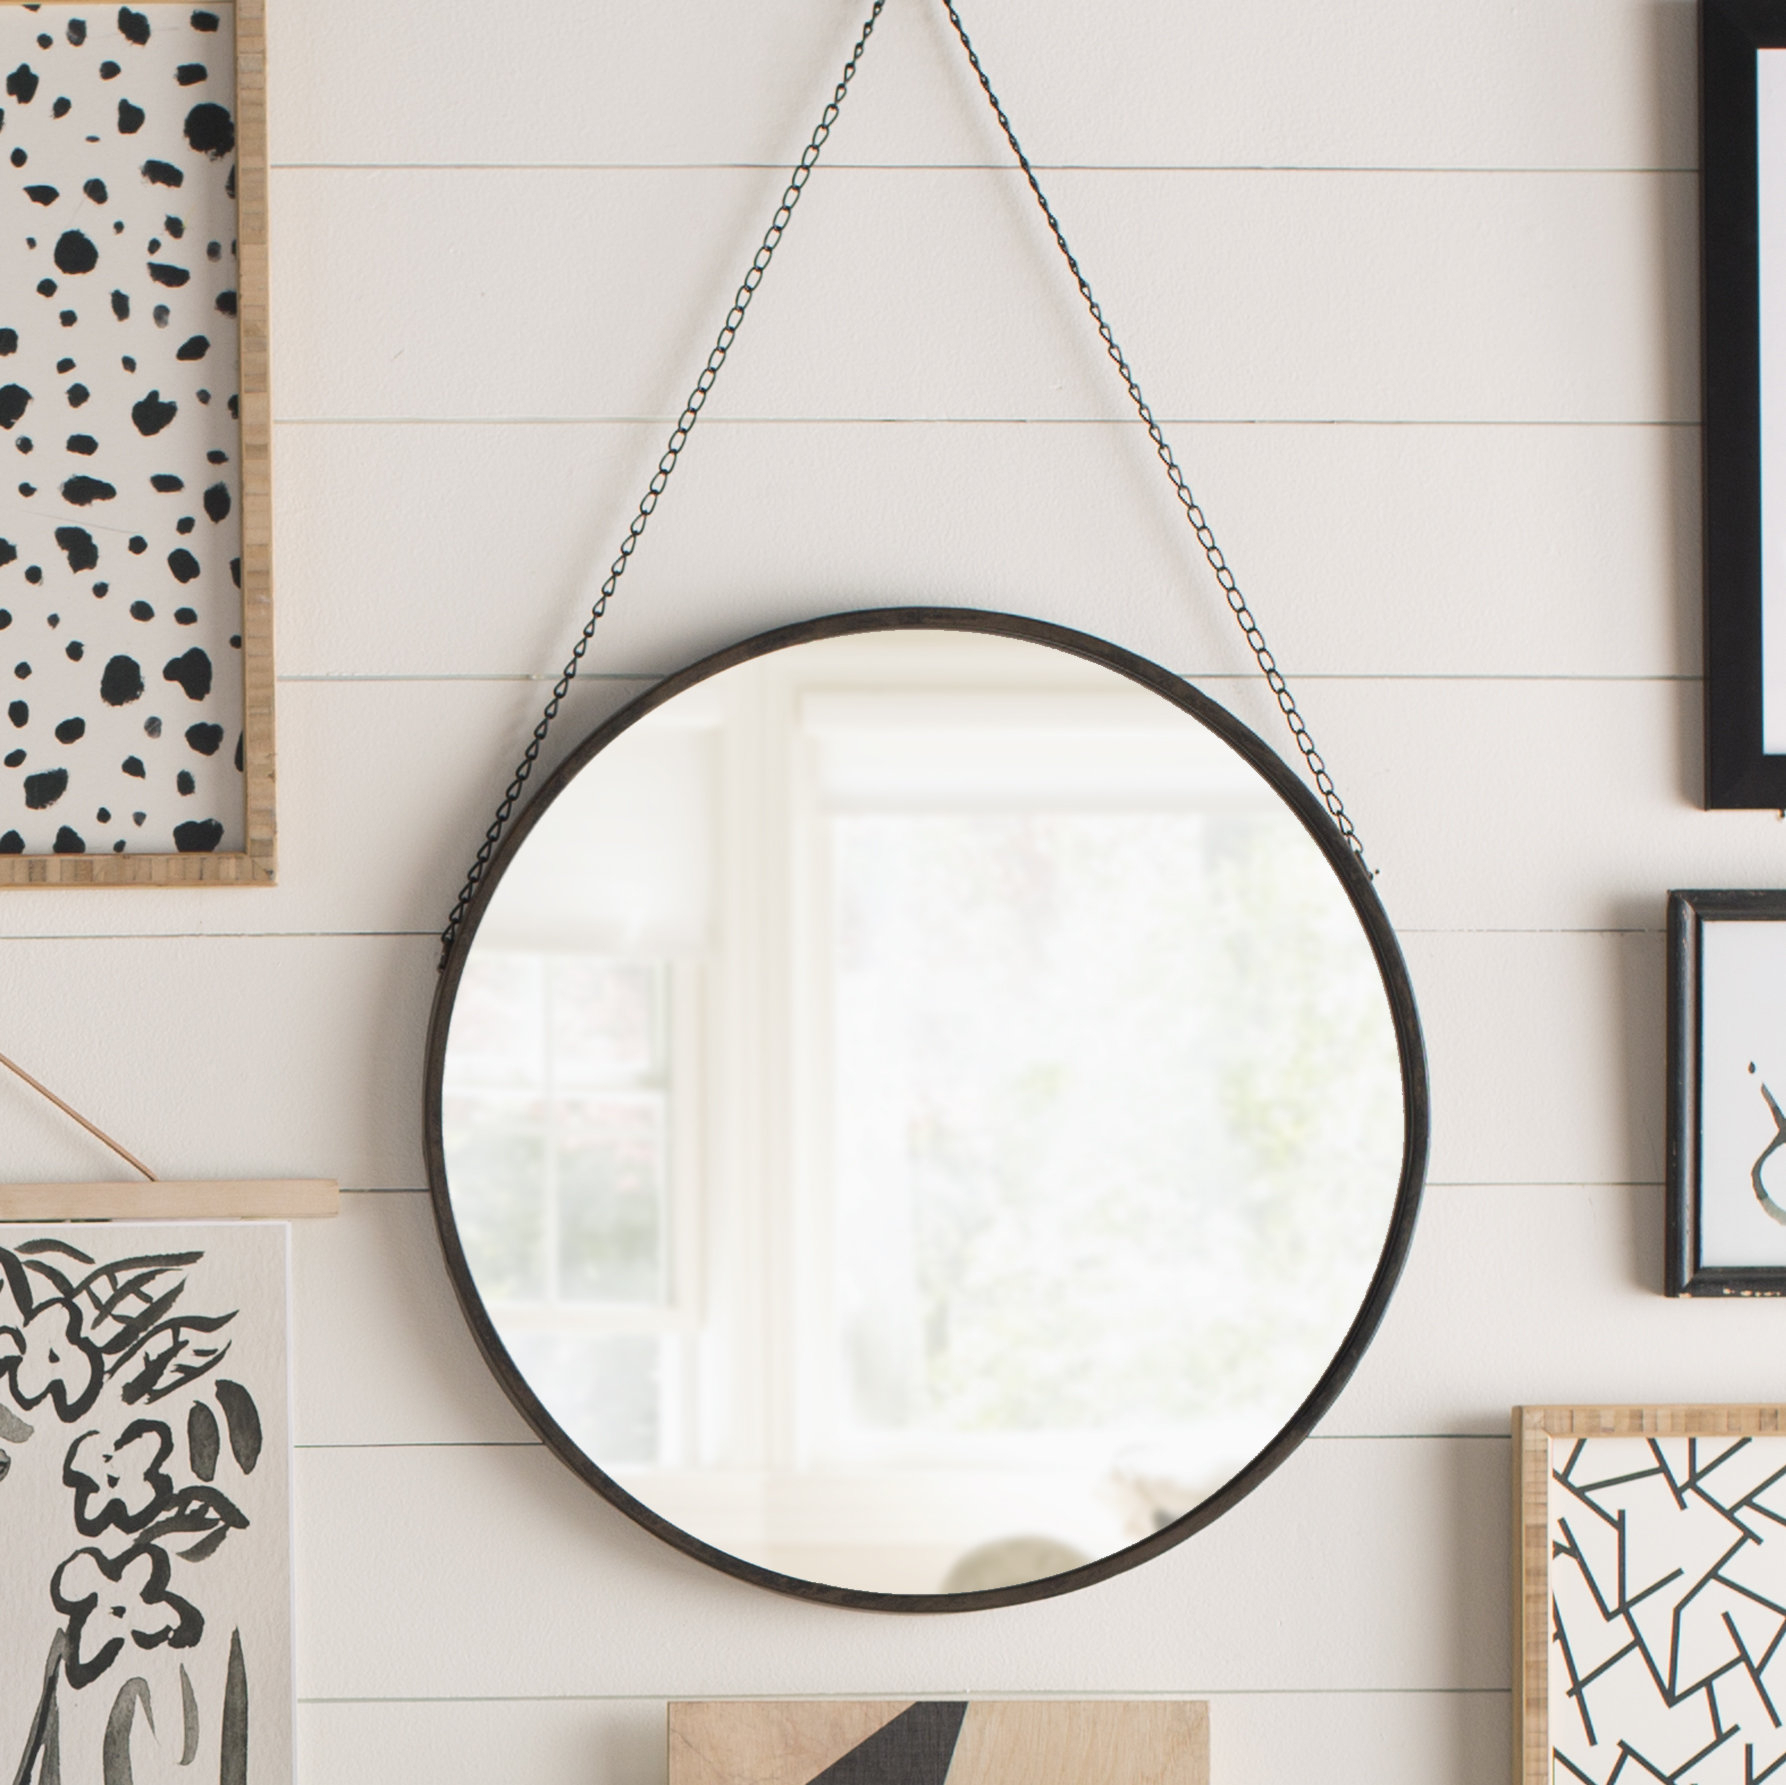 Hardison With Chain Hanger Accent Mirror For Kayden Accent Mirrors (View 20 of 30)